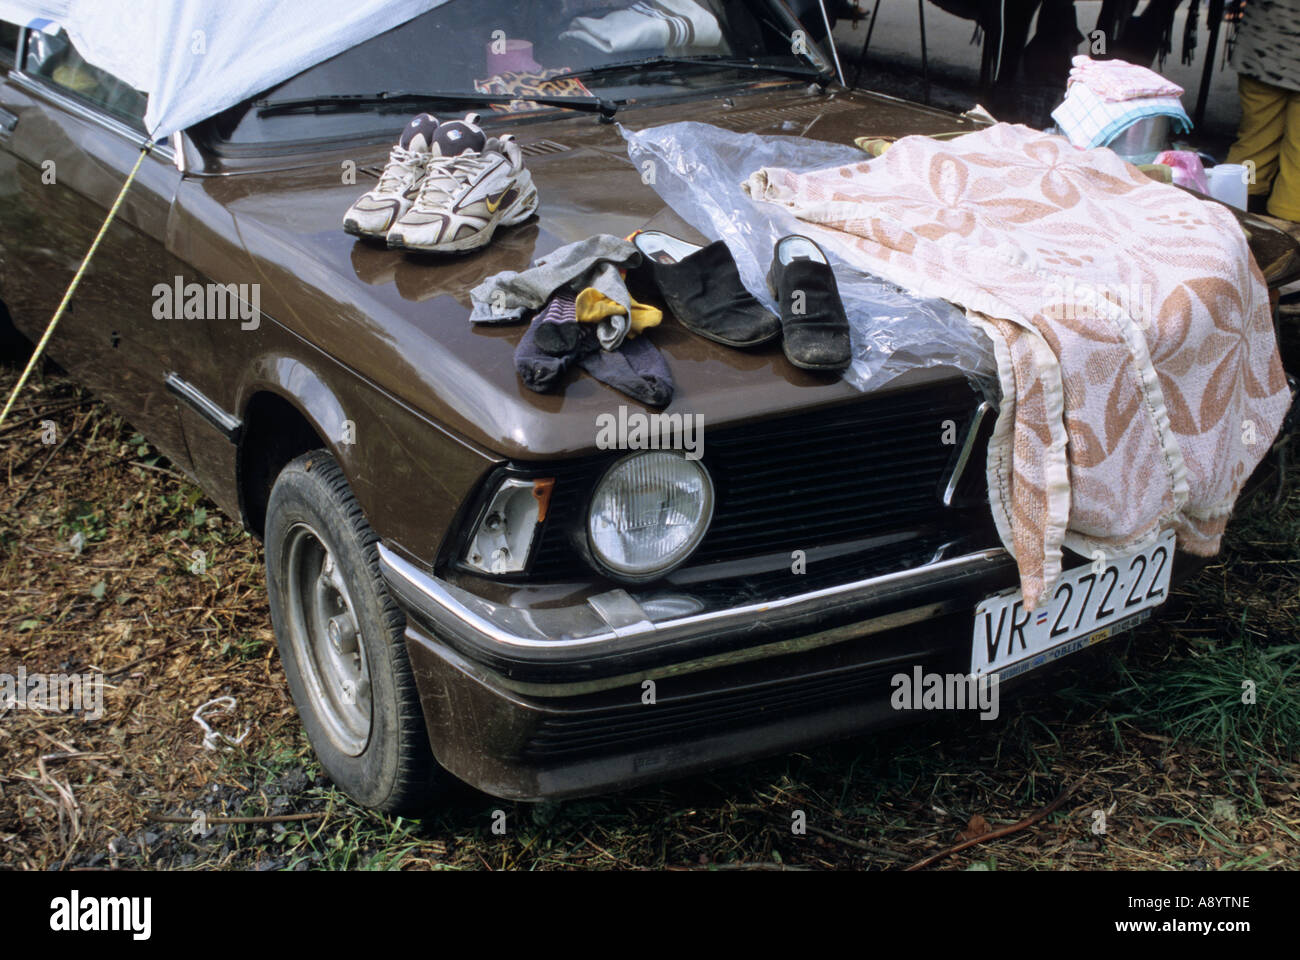 gipsy car used as house during the Guca Music Festival in Guca serbia - Stock Image